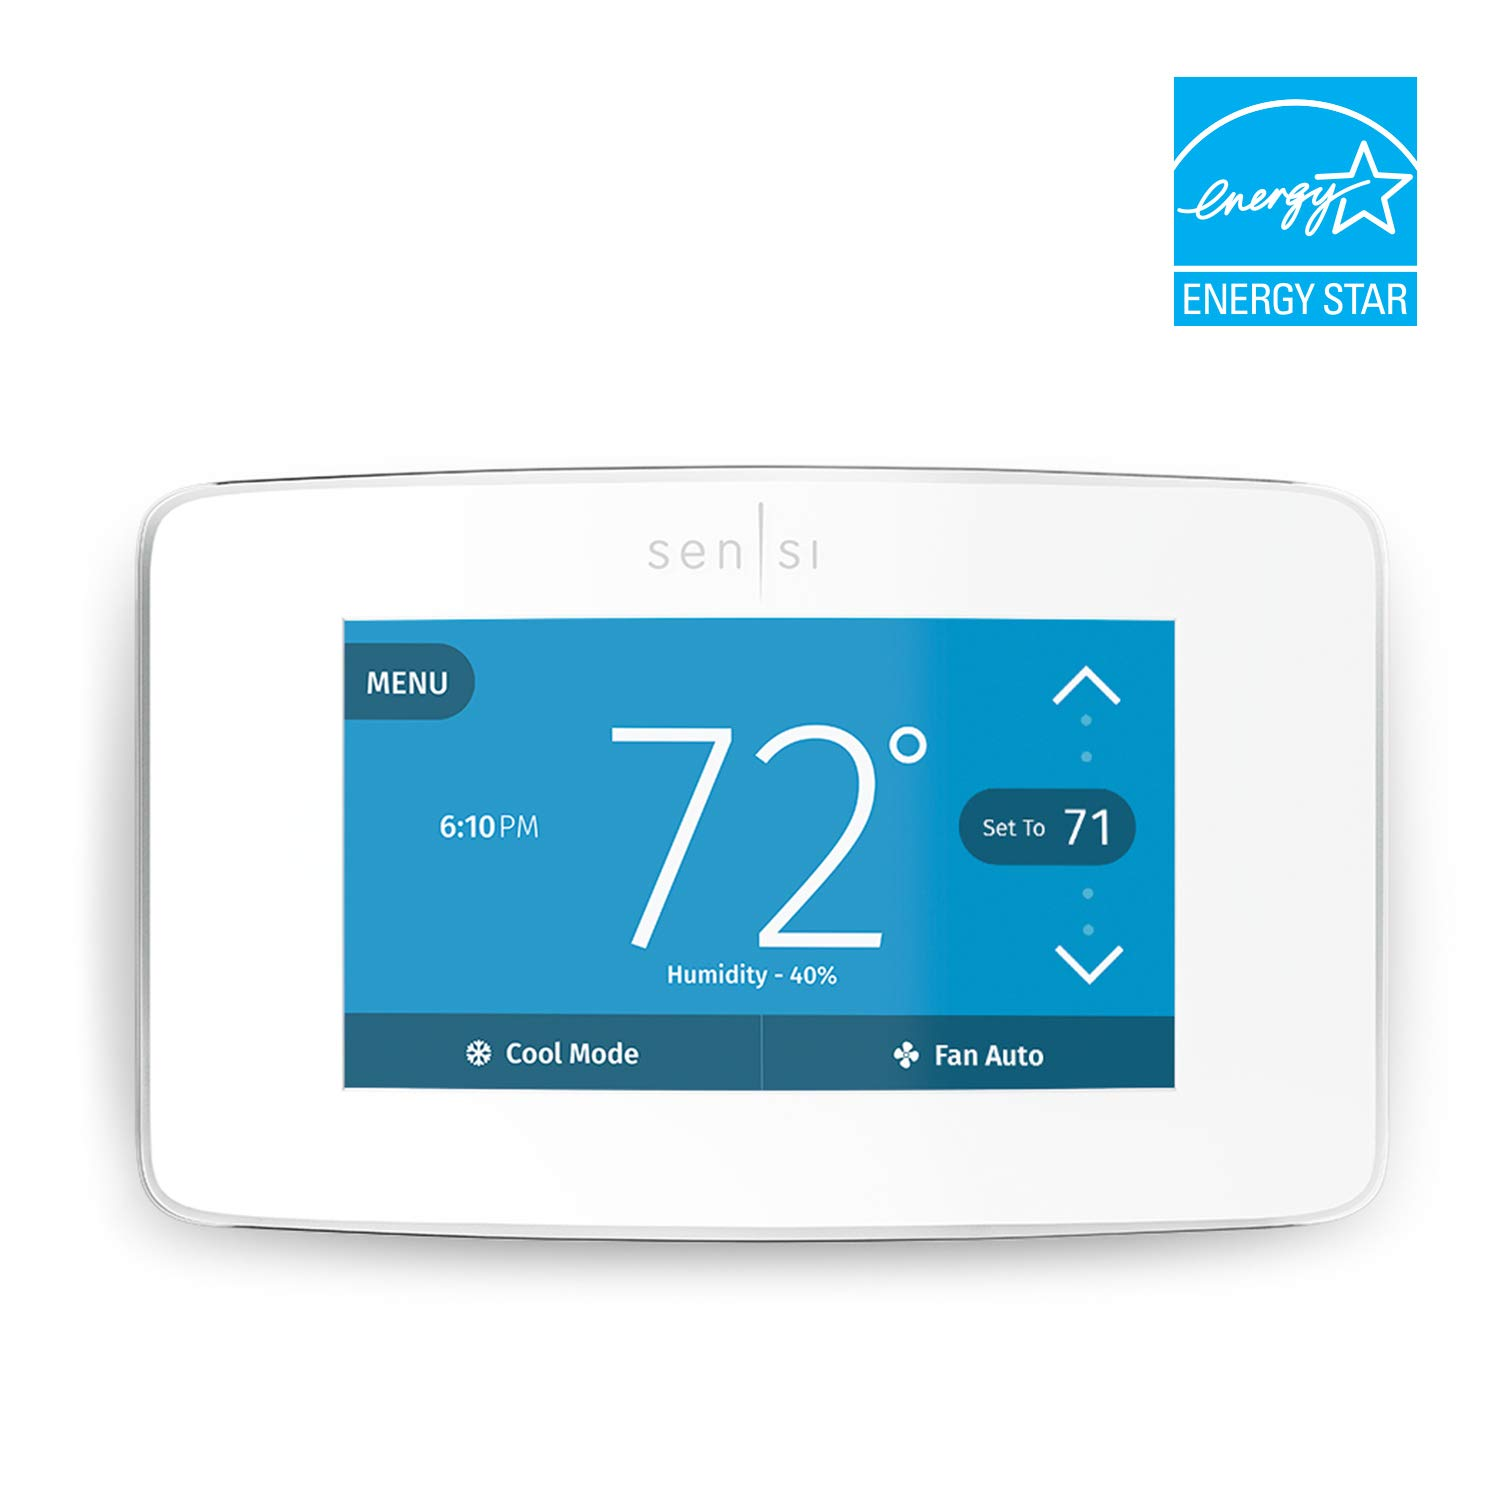 Emerson Sensi Touch Wi-Fi Thermostat with Touchscreen Color Display, Works with Alexa, White, Energy Star Certified